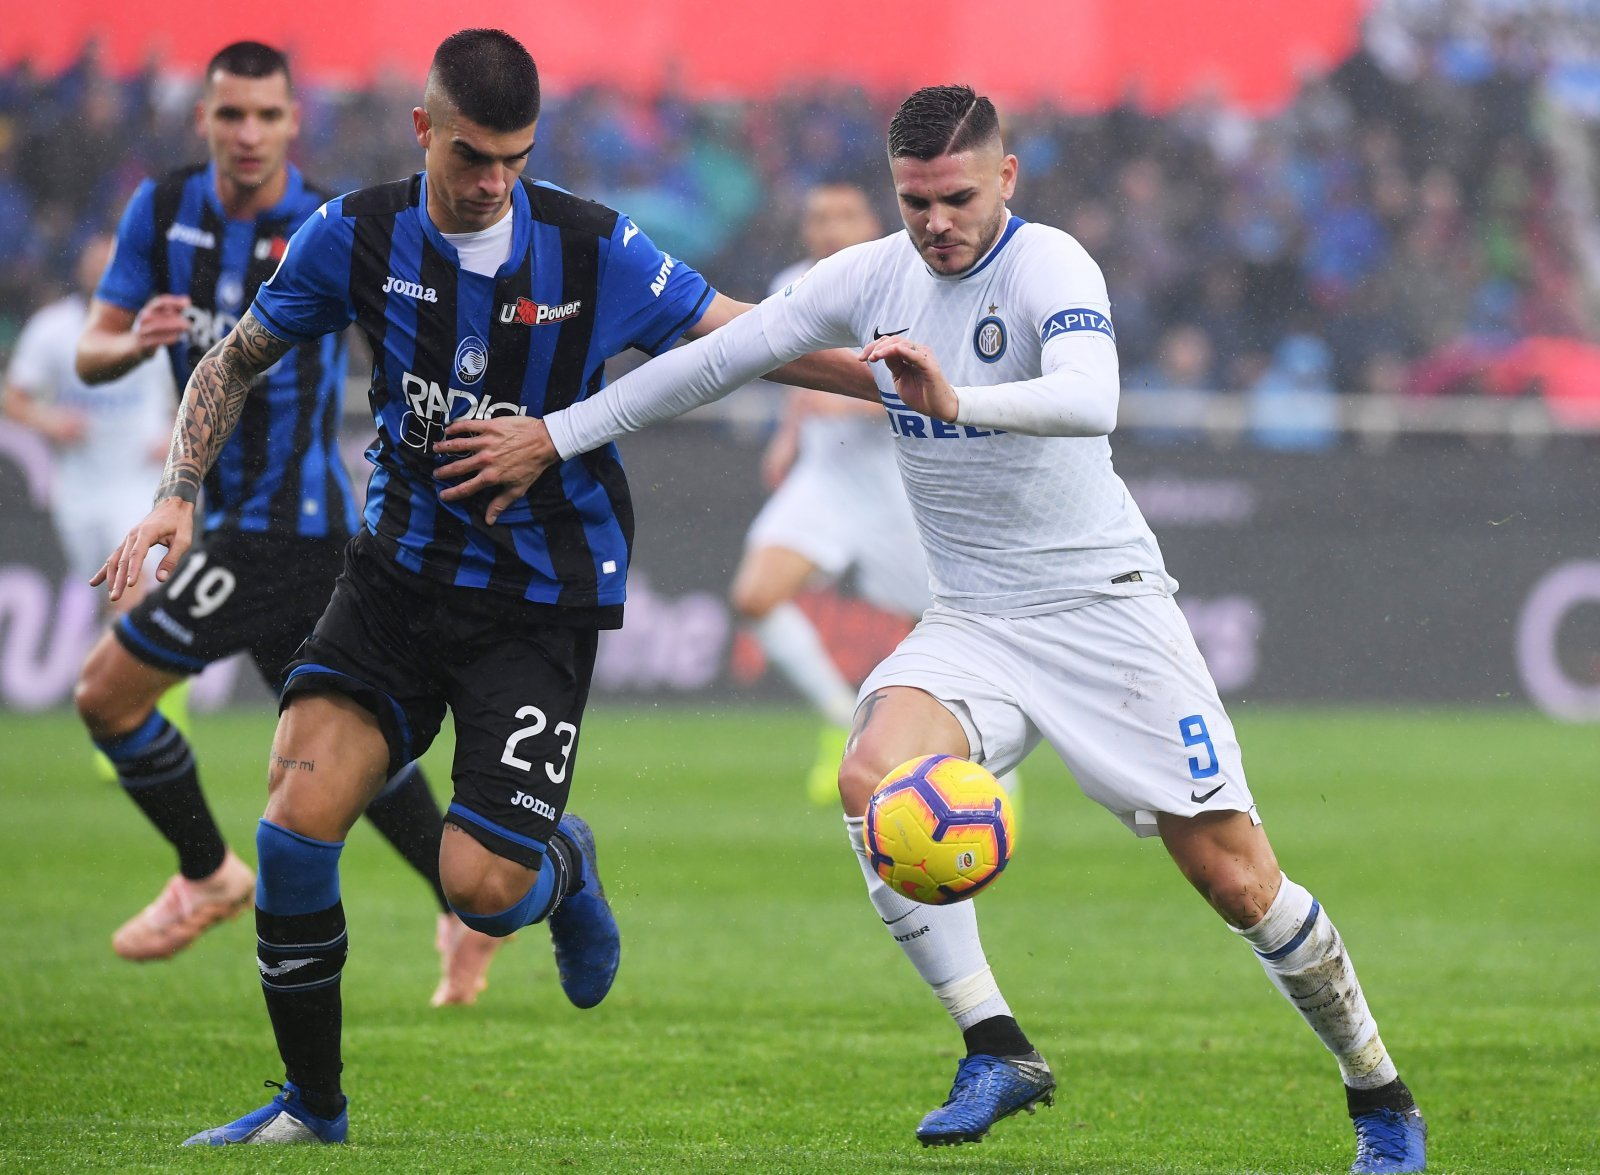 Everton should seriously consider a bid to sign Gianluca Mancini